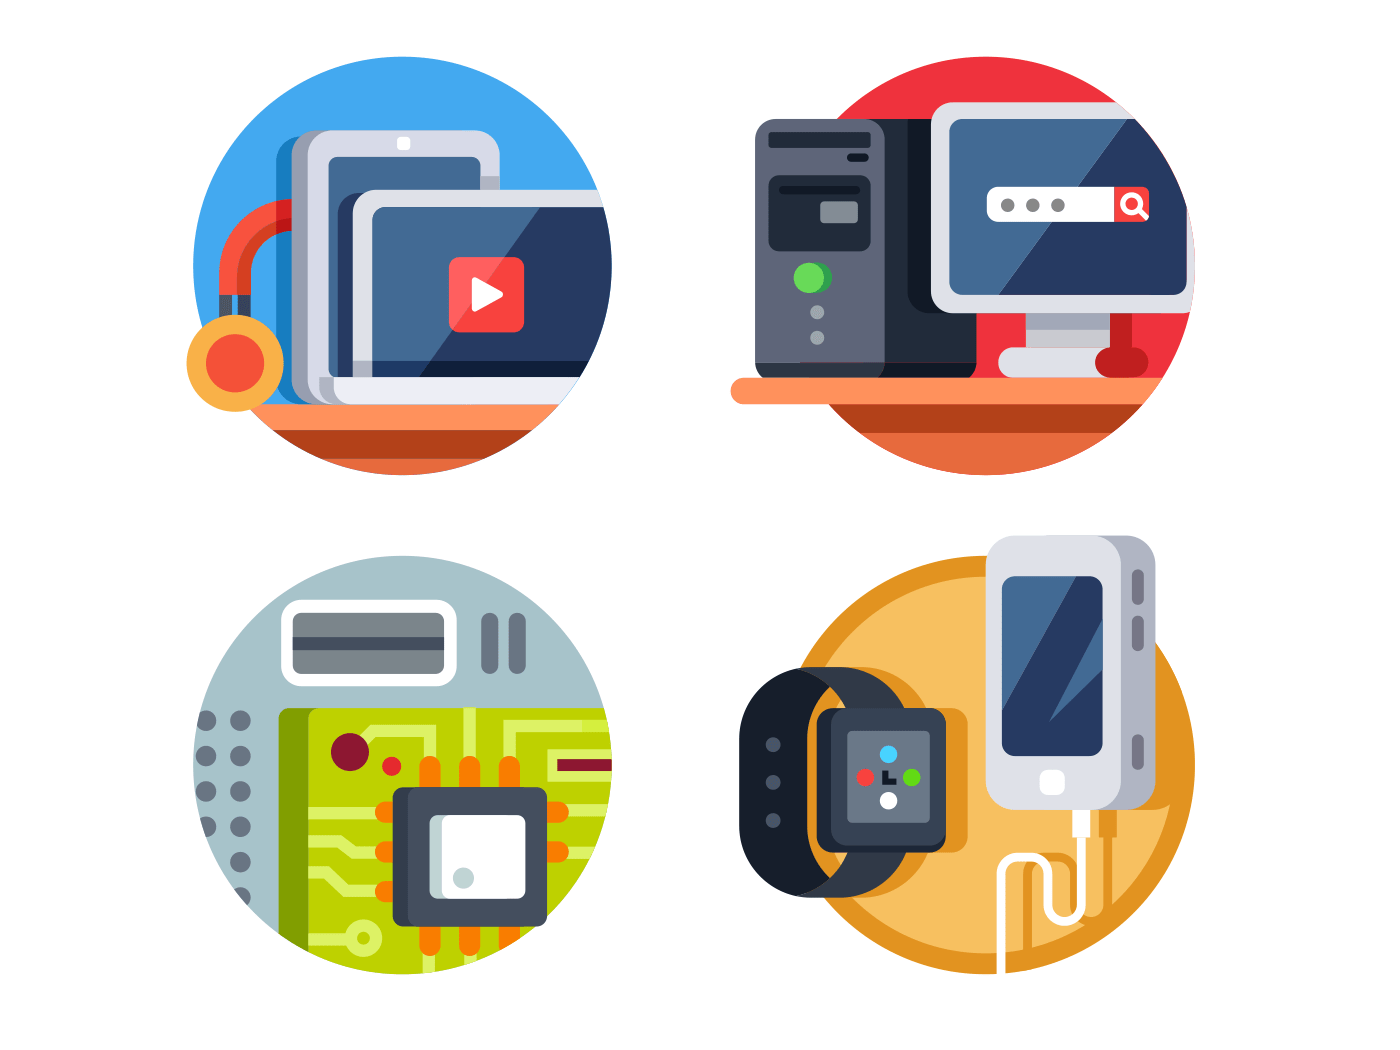 Computer device set vector icons